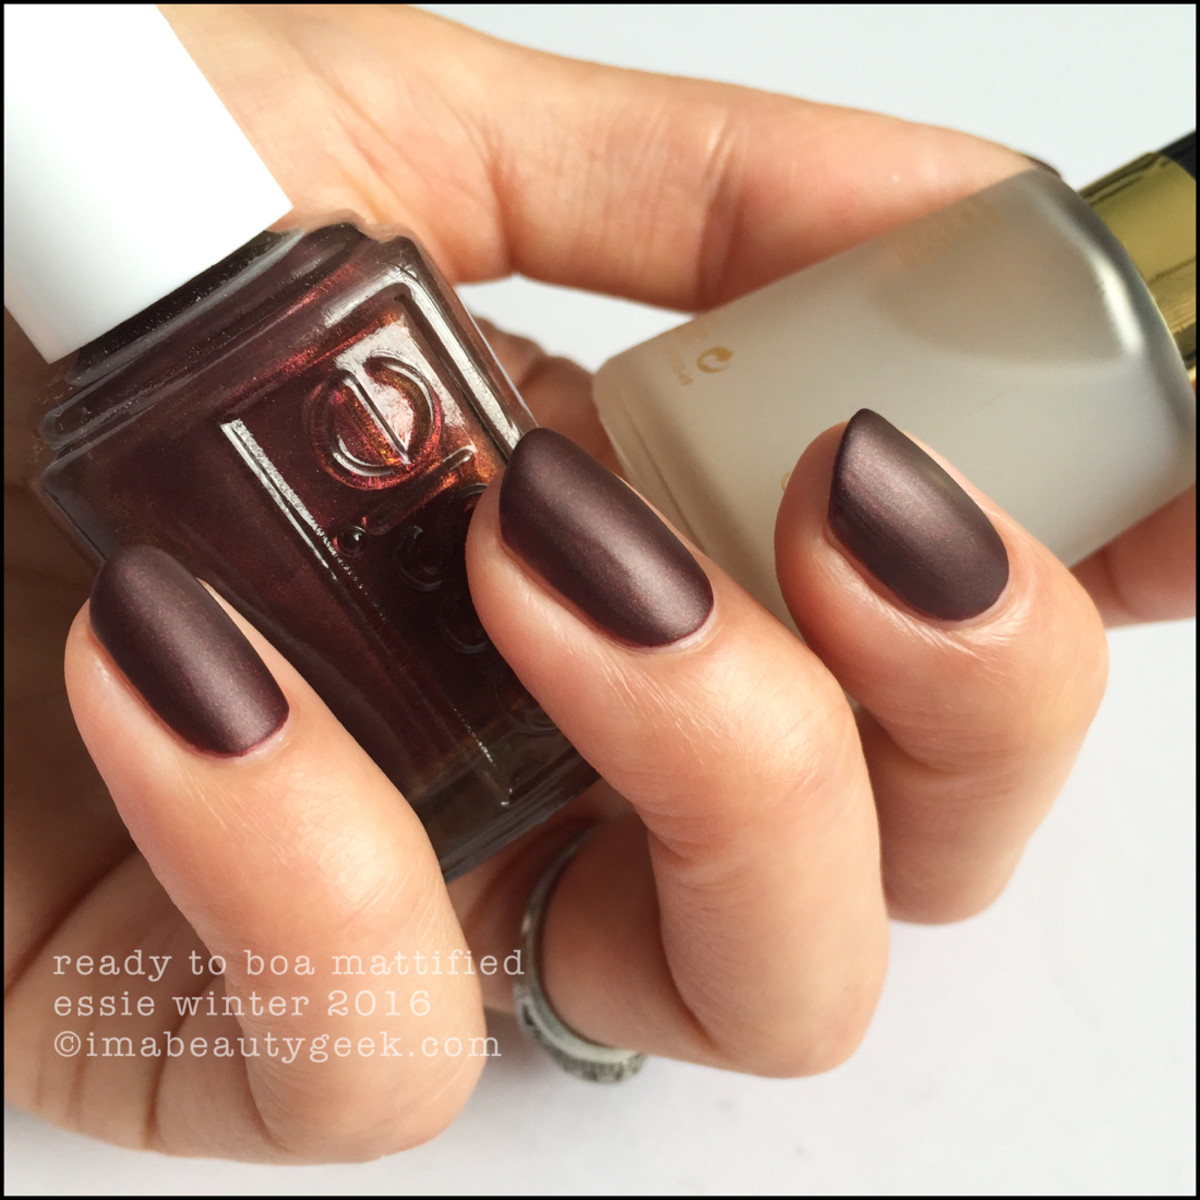 Essie Ready to Boa Mattified_Essie Winter 2016 Collection Swatches Review